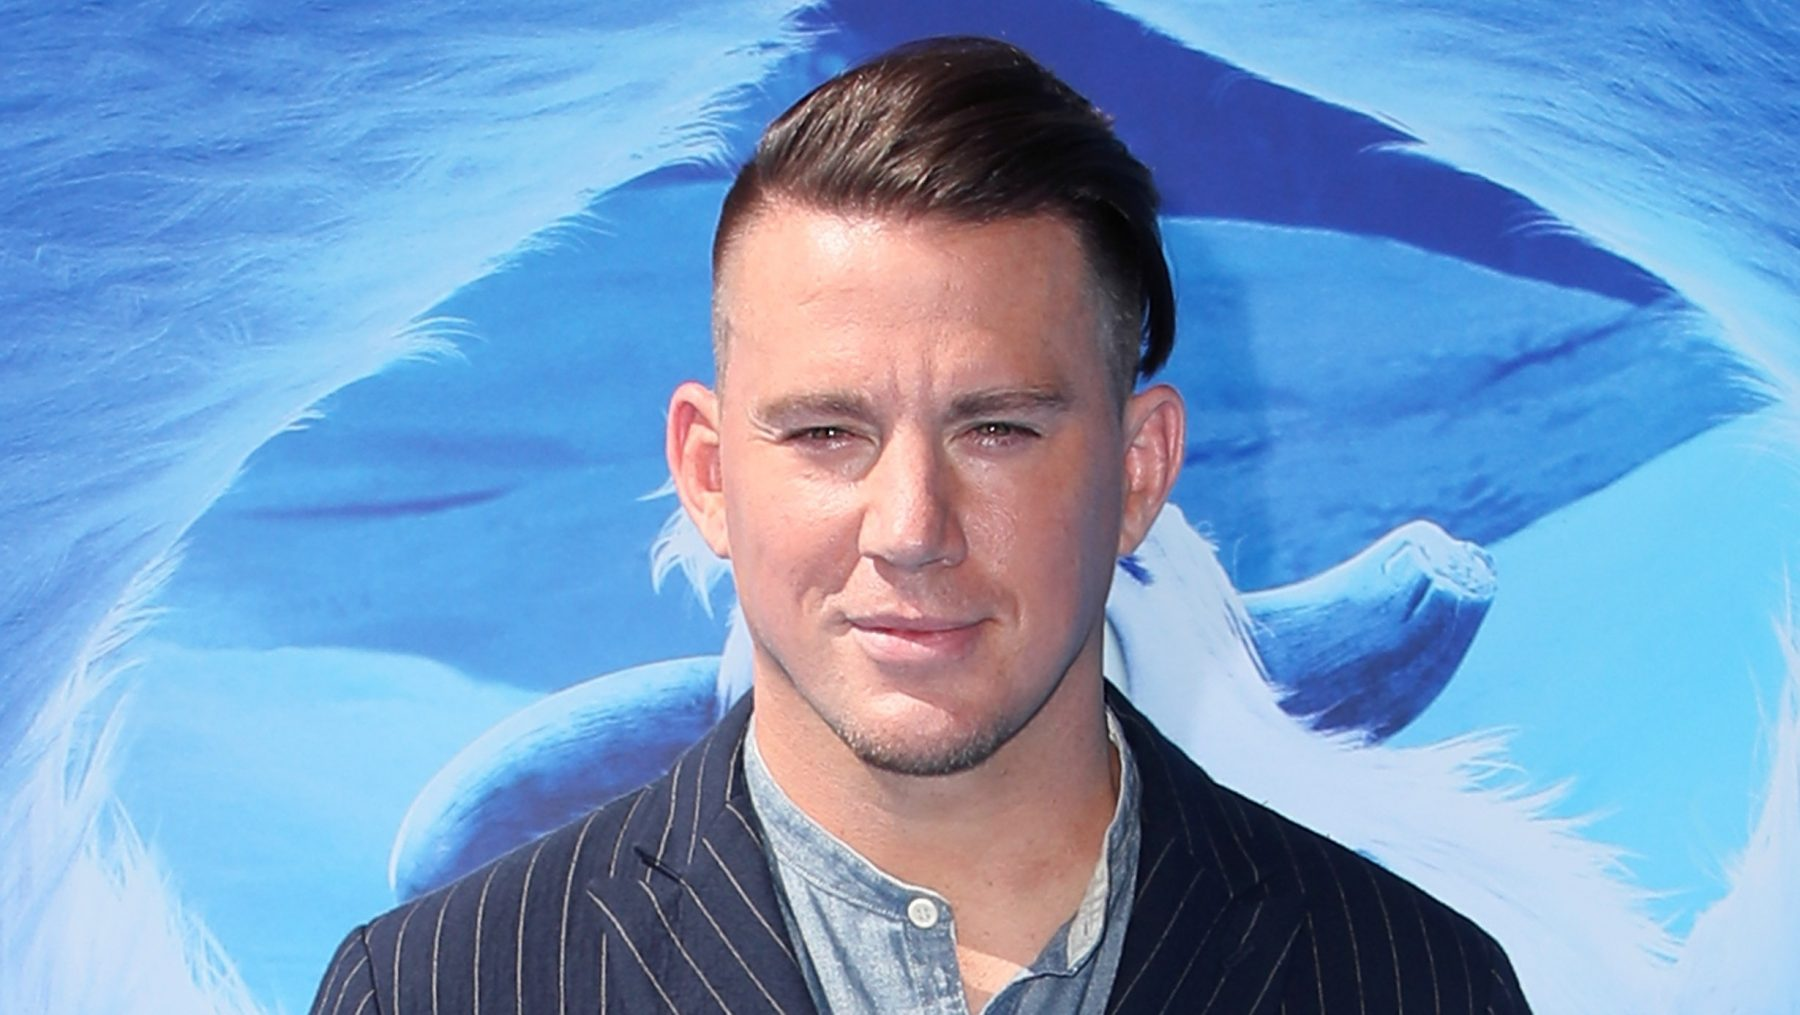 Channing Tatum verliest spel en post naaktfoto op Instagram